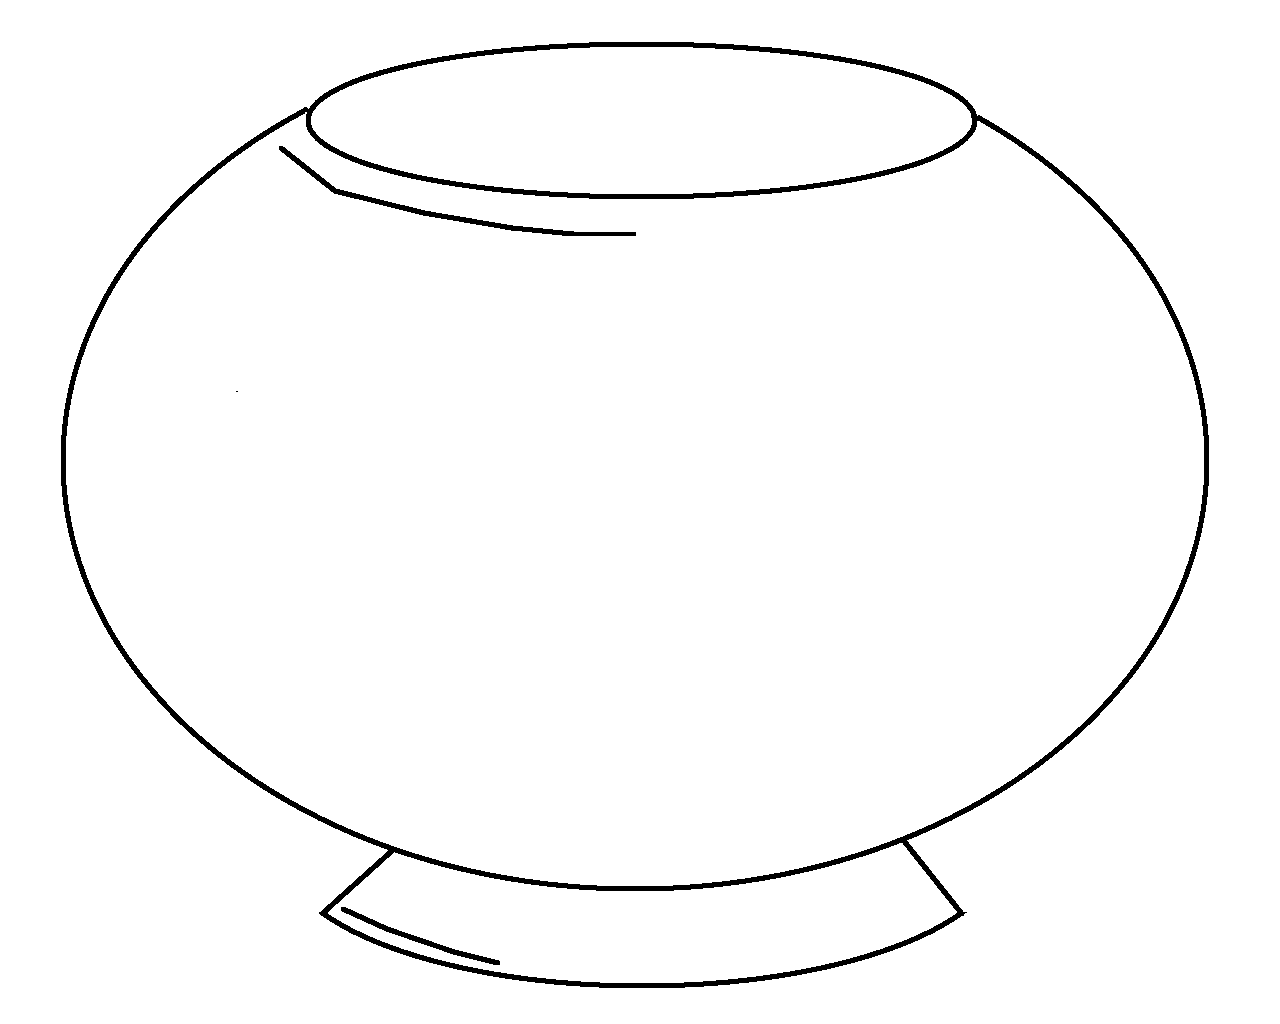 Blank fish bowl coloring page clipart best for Empty fish bowl coloring page